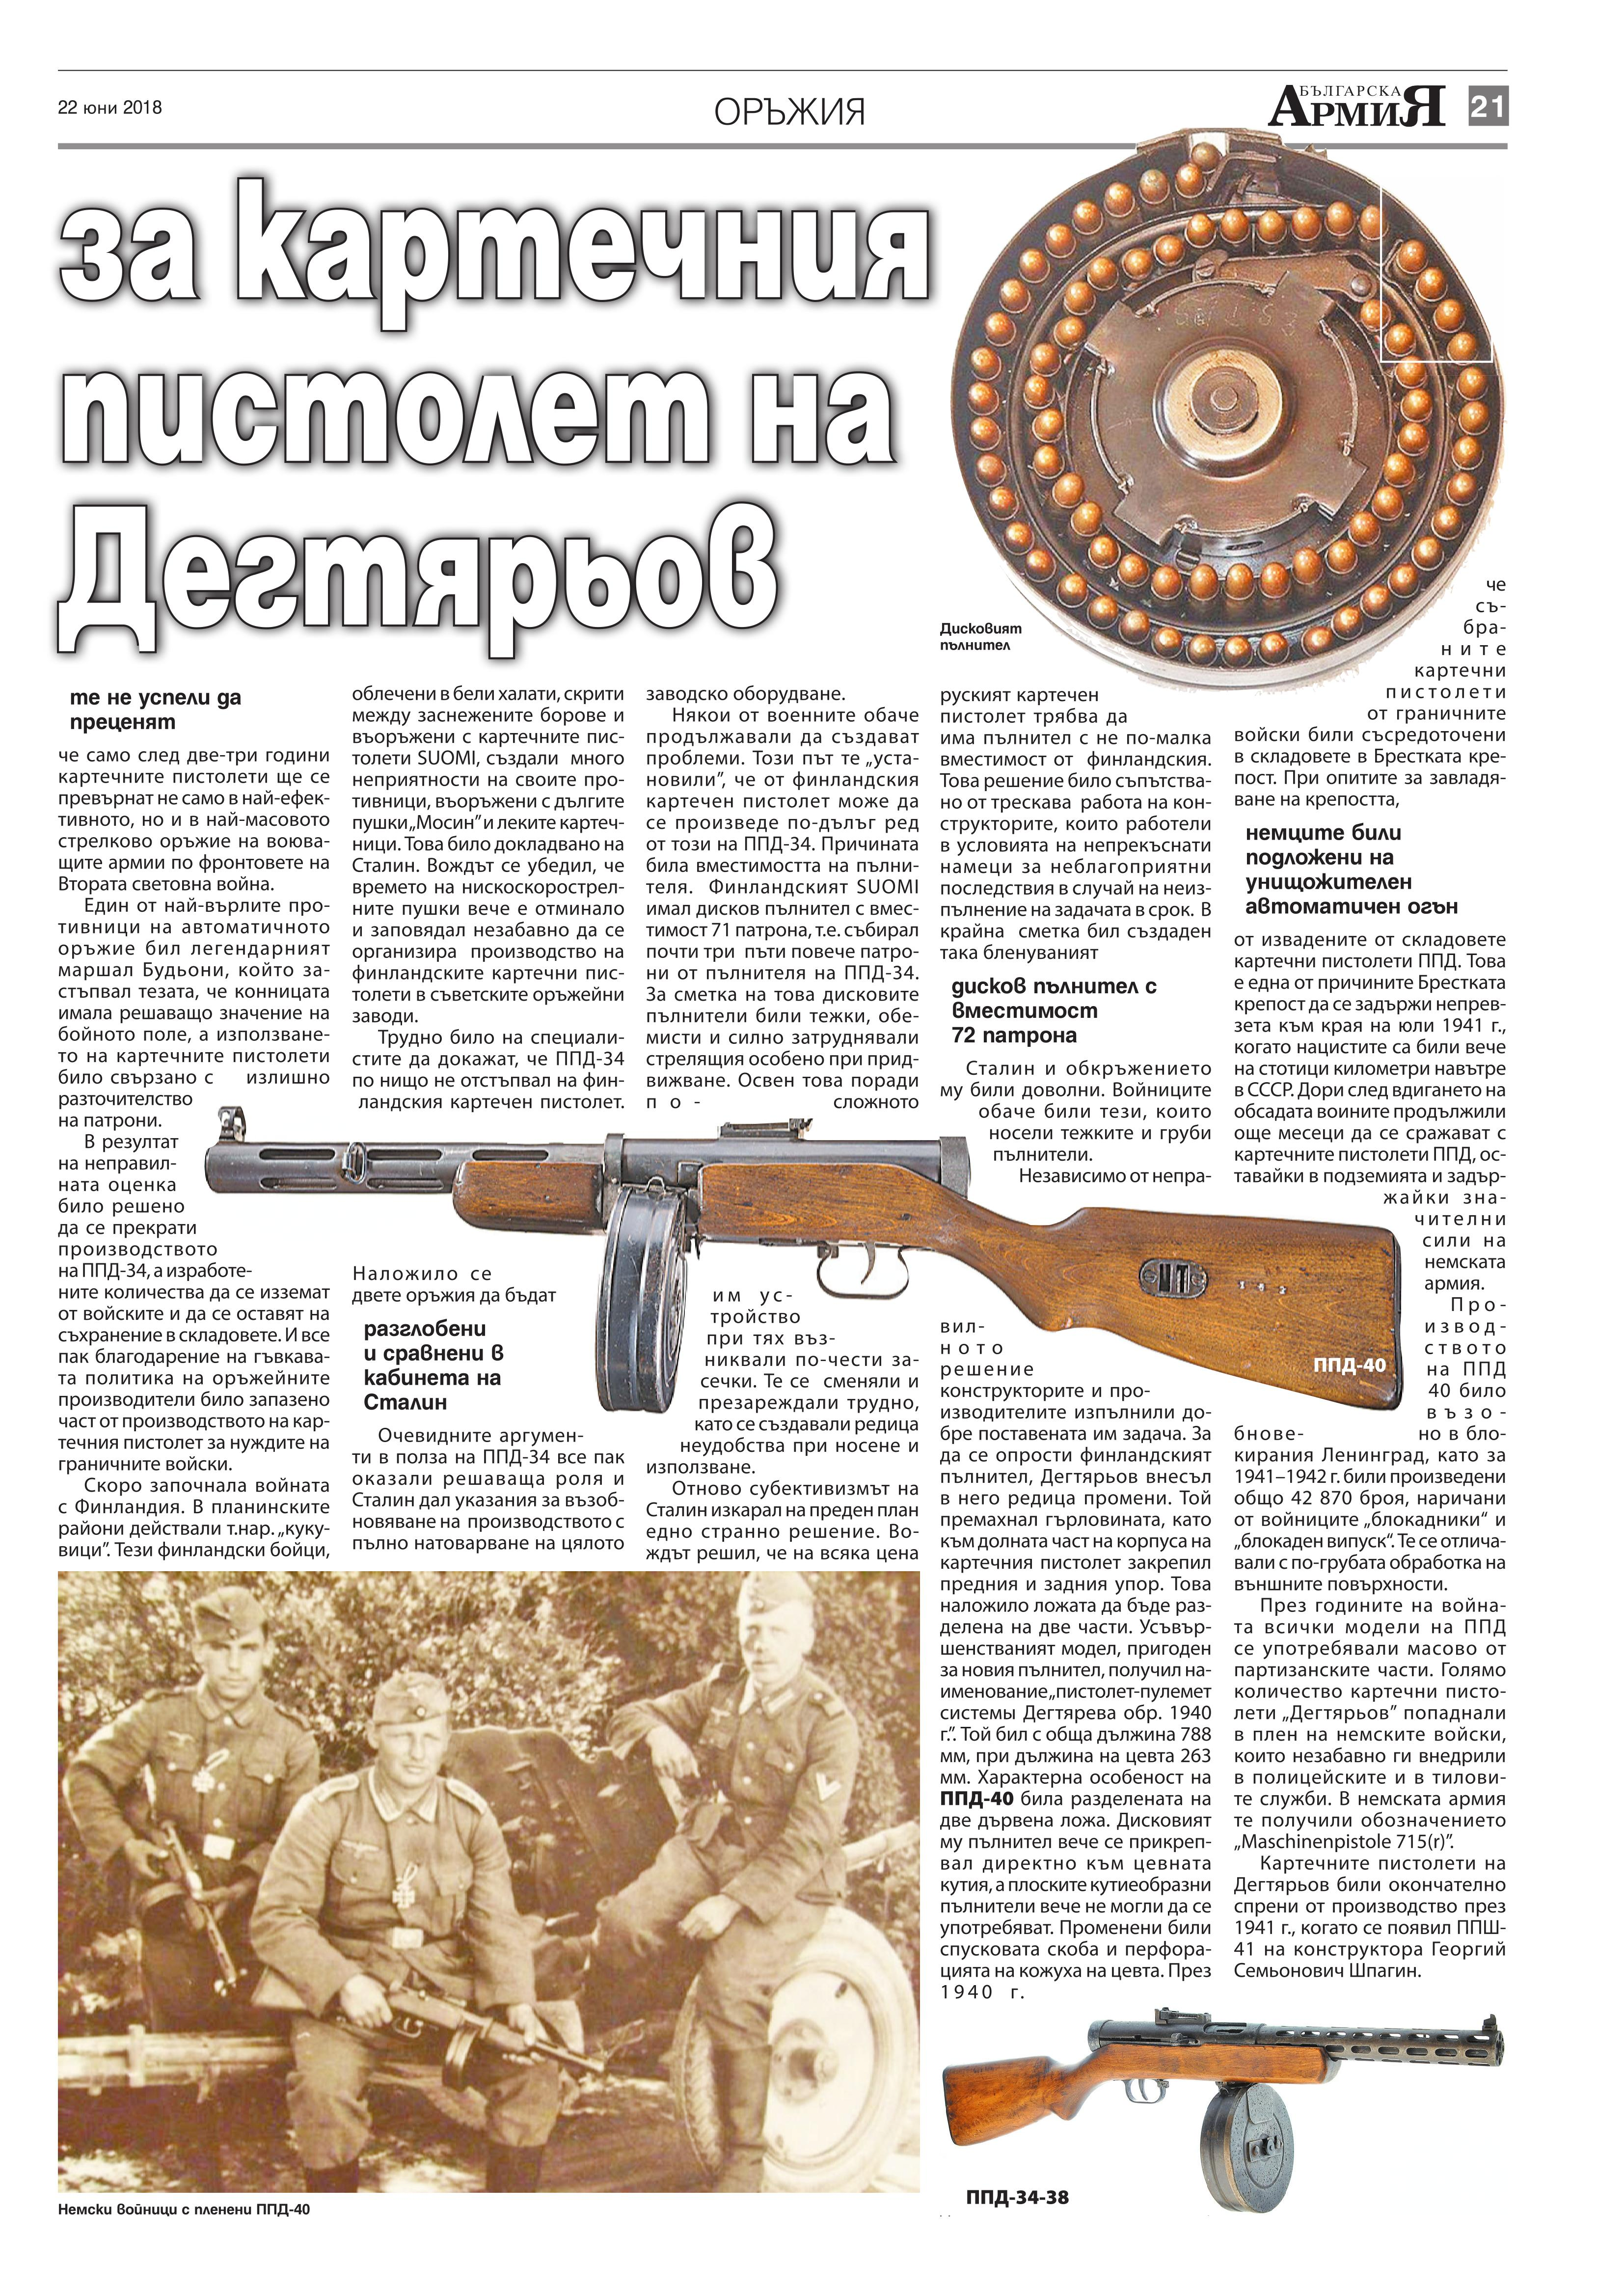 http://armymedia.bg/wp-content/uploads/2015/06/21.page1_-56.jpg